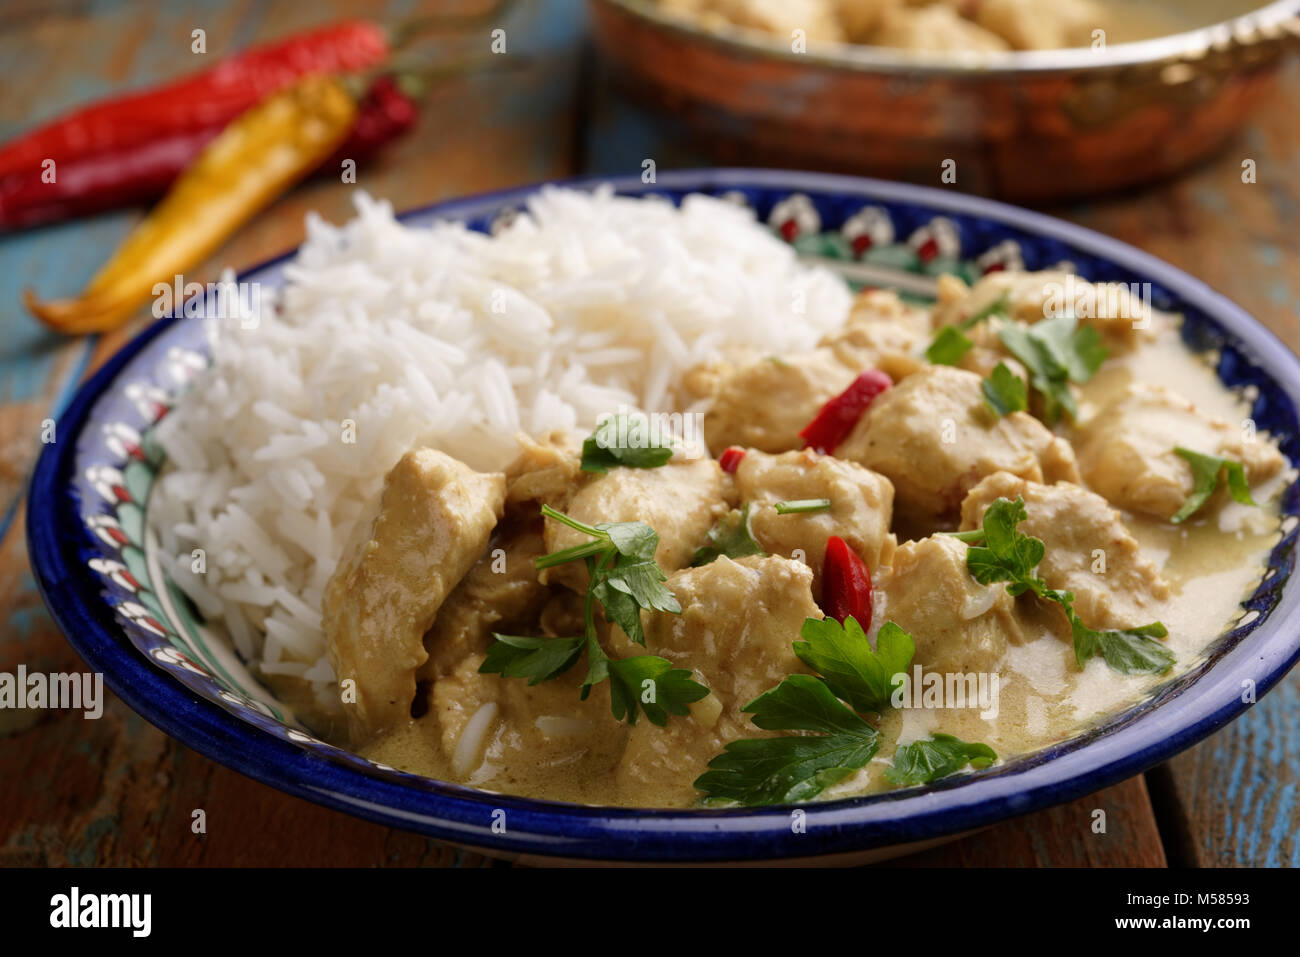 Chicken curry with rice in an ornate plate - Stock Image